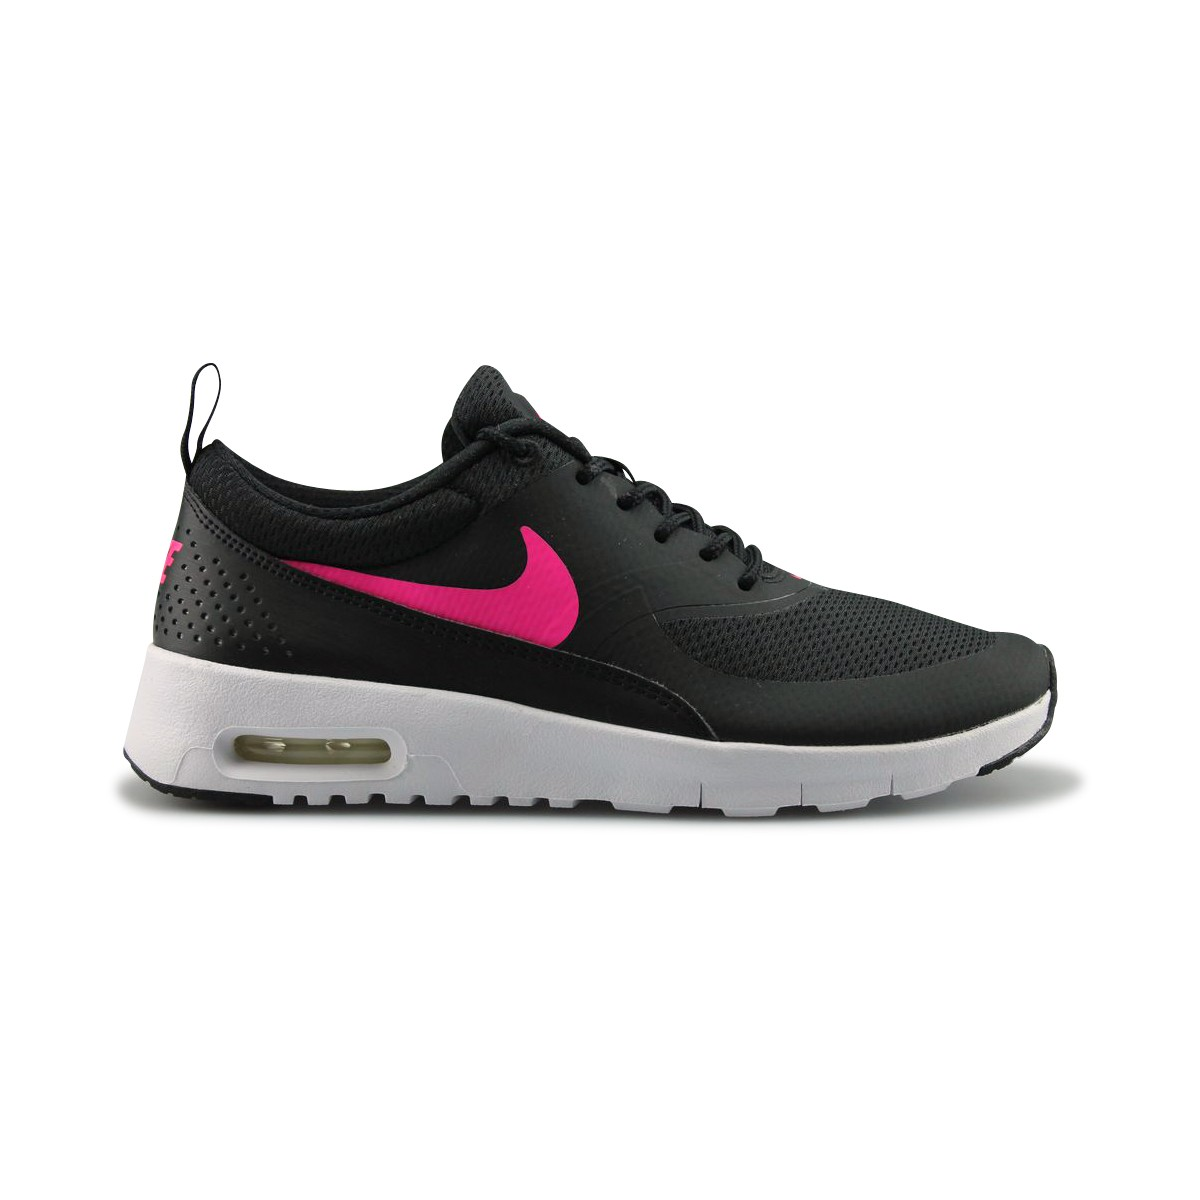 huge selection of 35a87 28eb9 Nike Air Max Thea Noir Blanc Rose 814444-001 Street Shoes ...